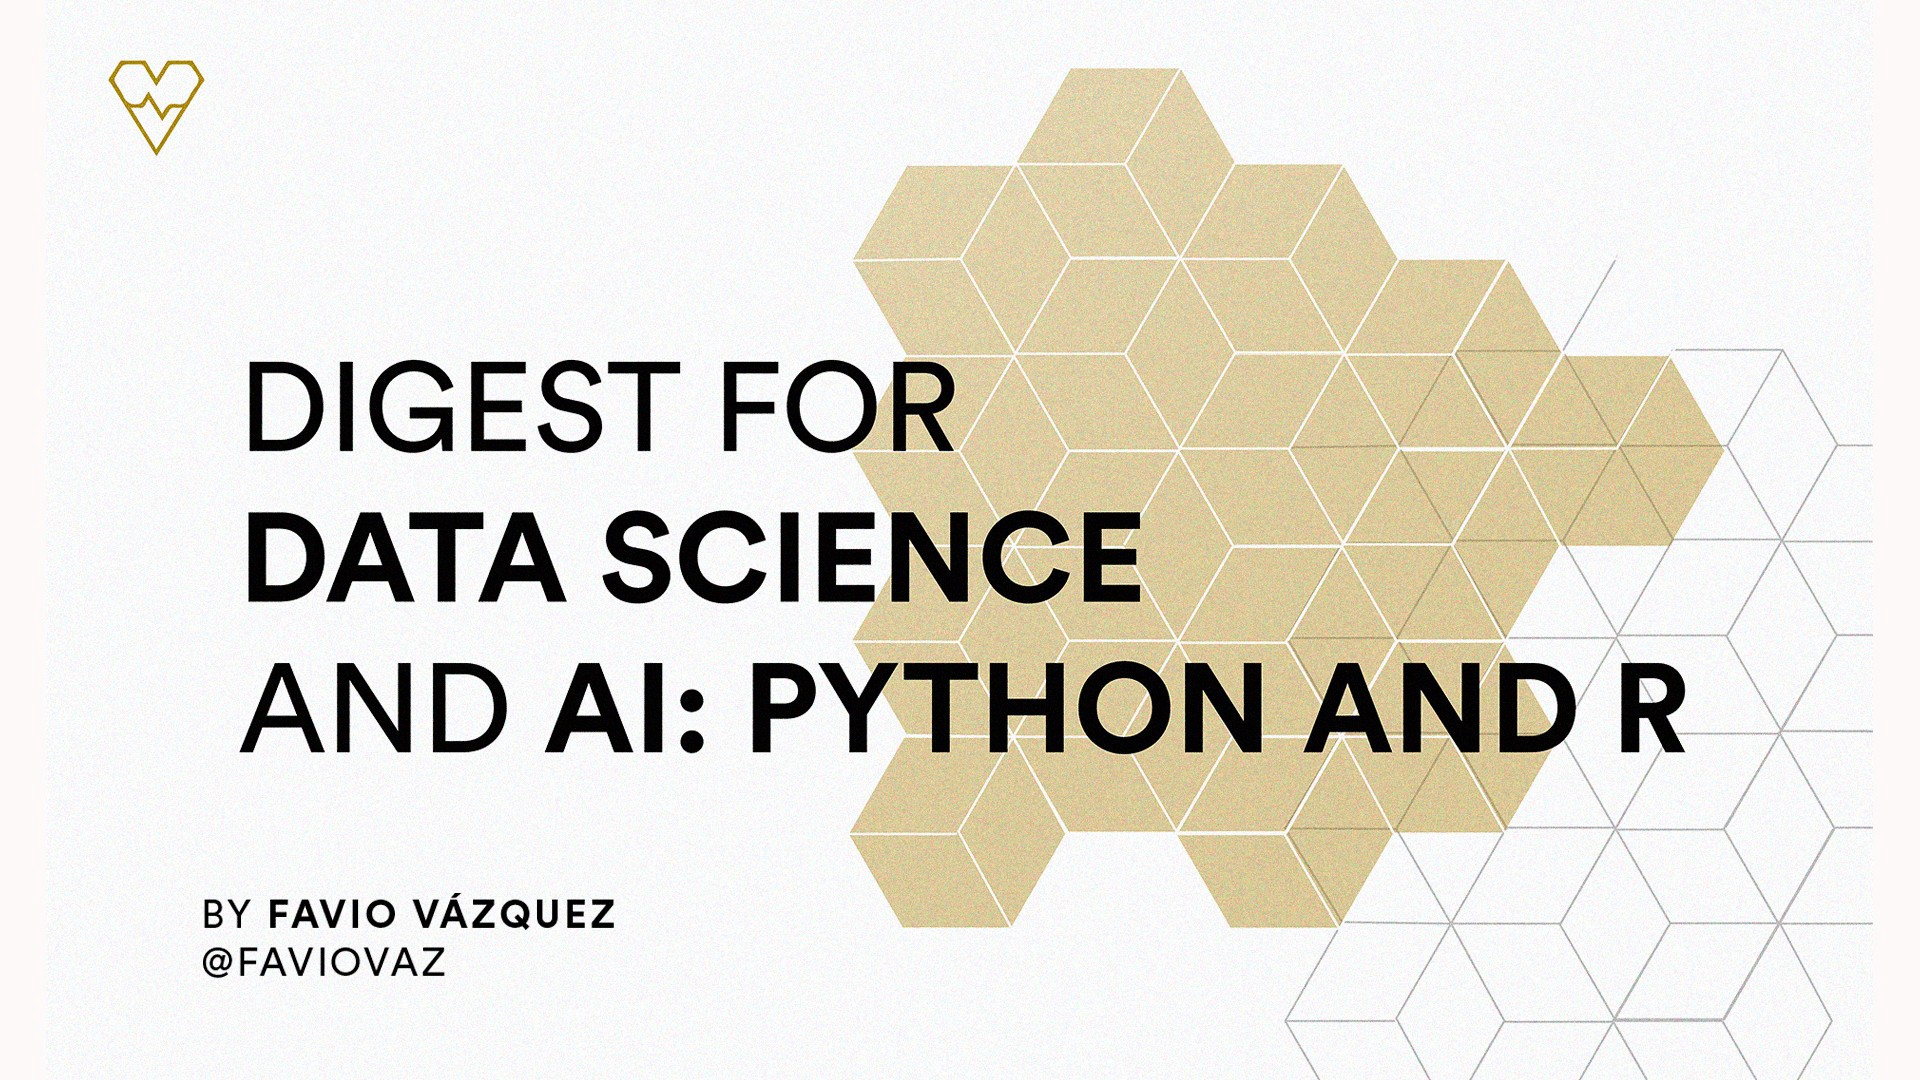 Weekly Digest for Data Science and AI: Python and R (Volume 16)